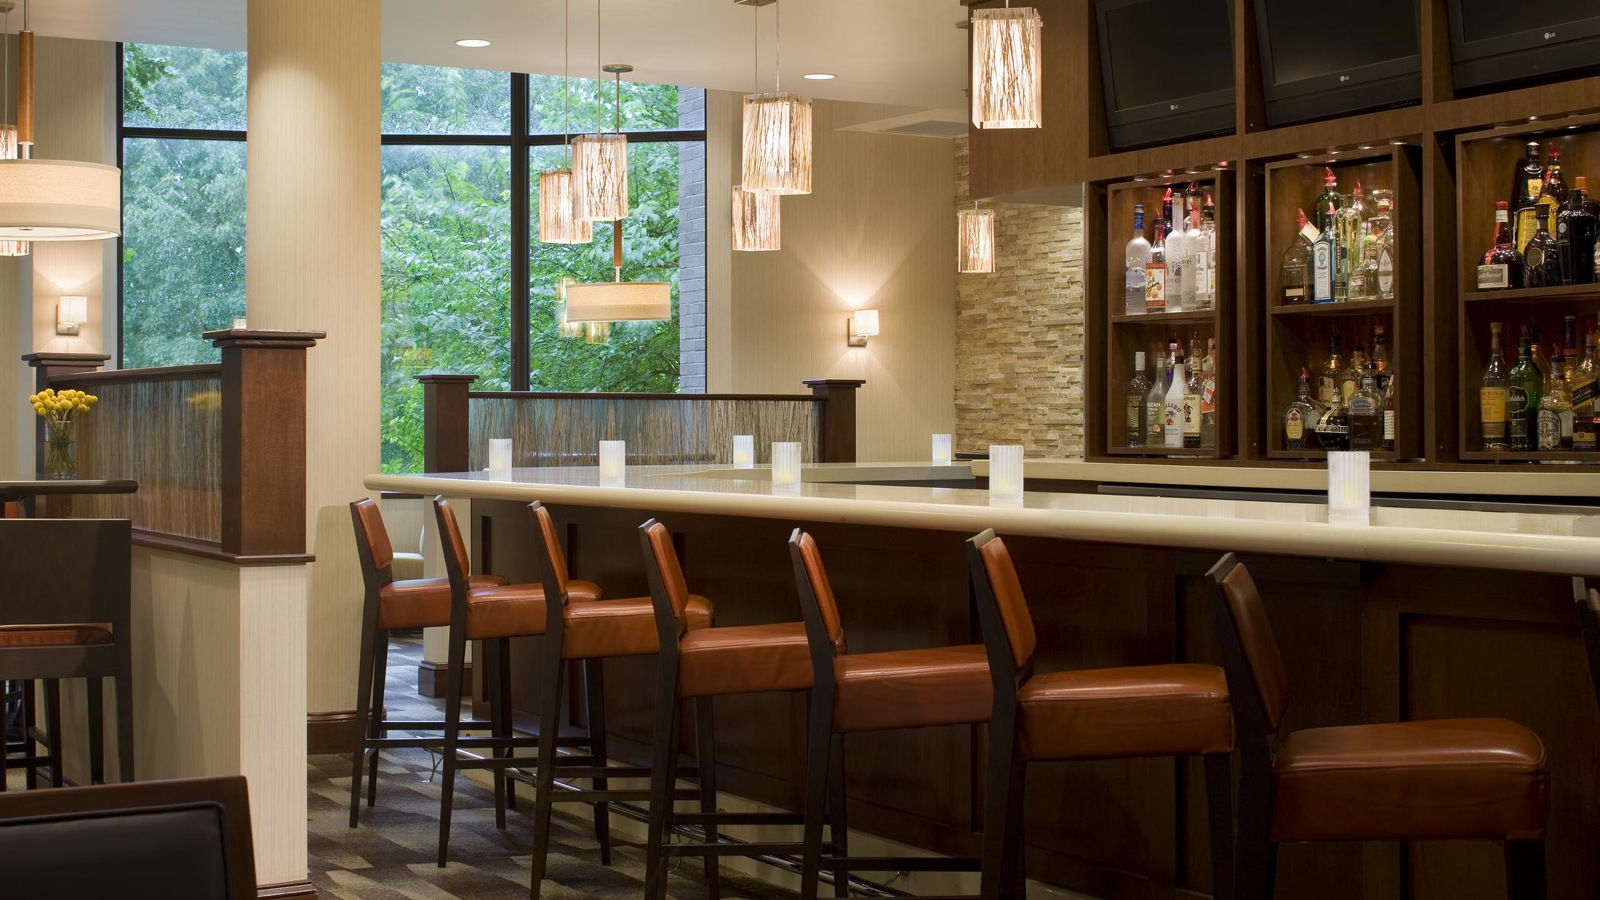 Sheraton Columbia Town Center Hotel | Hotel Features - Dining